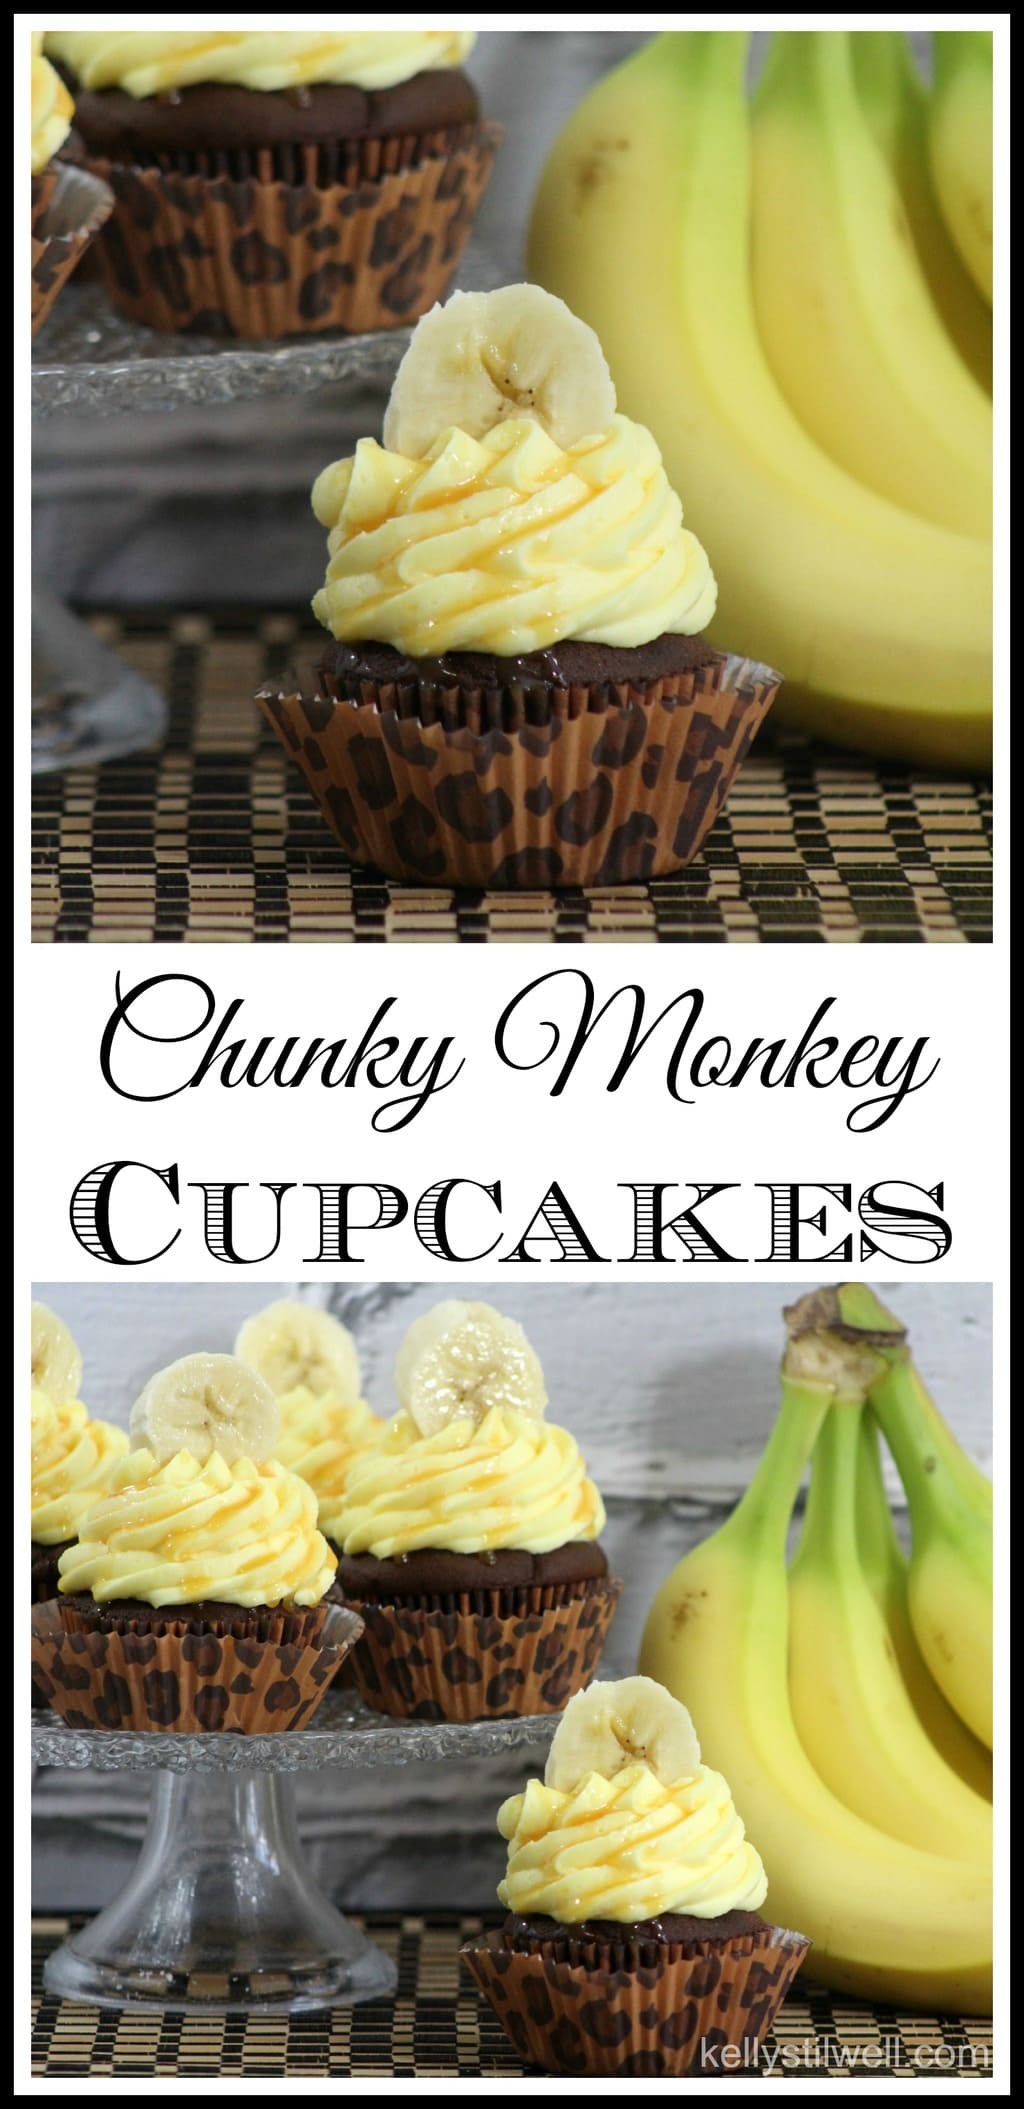 Recipe For Chunky Monkey Cup Cakes